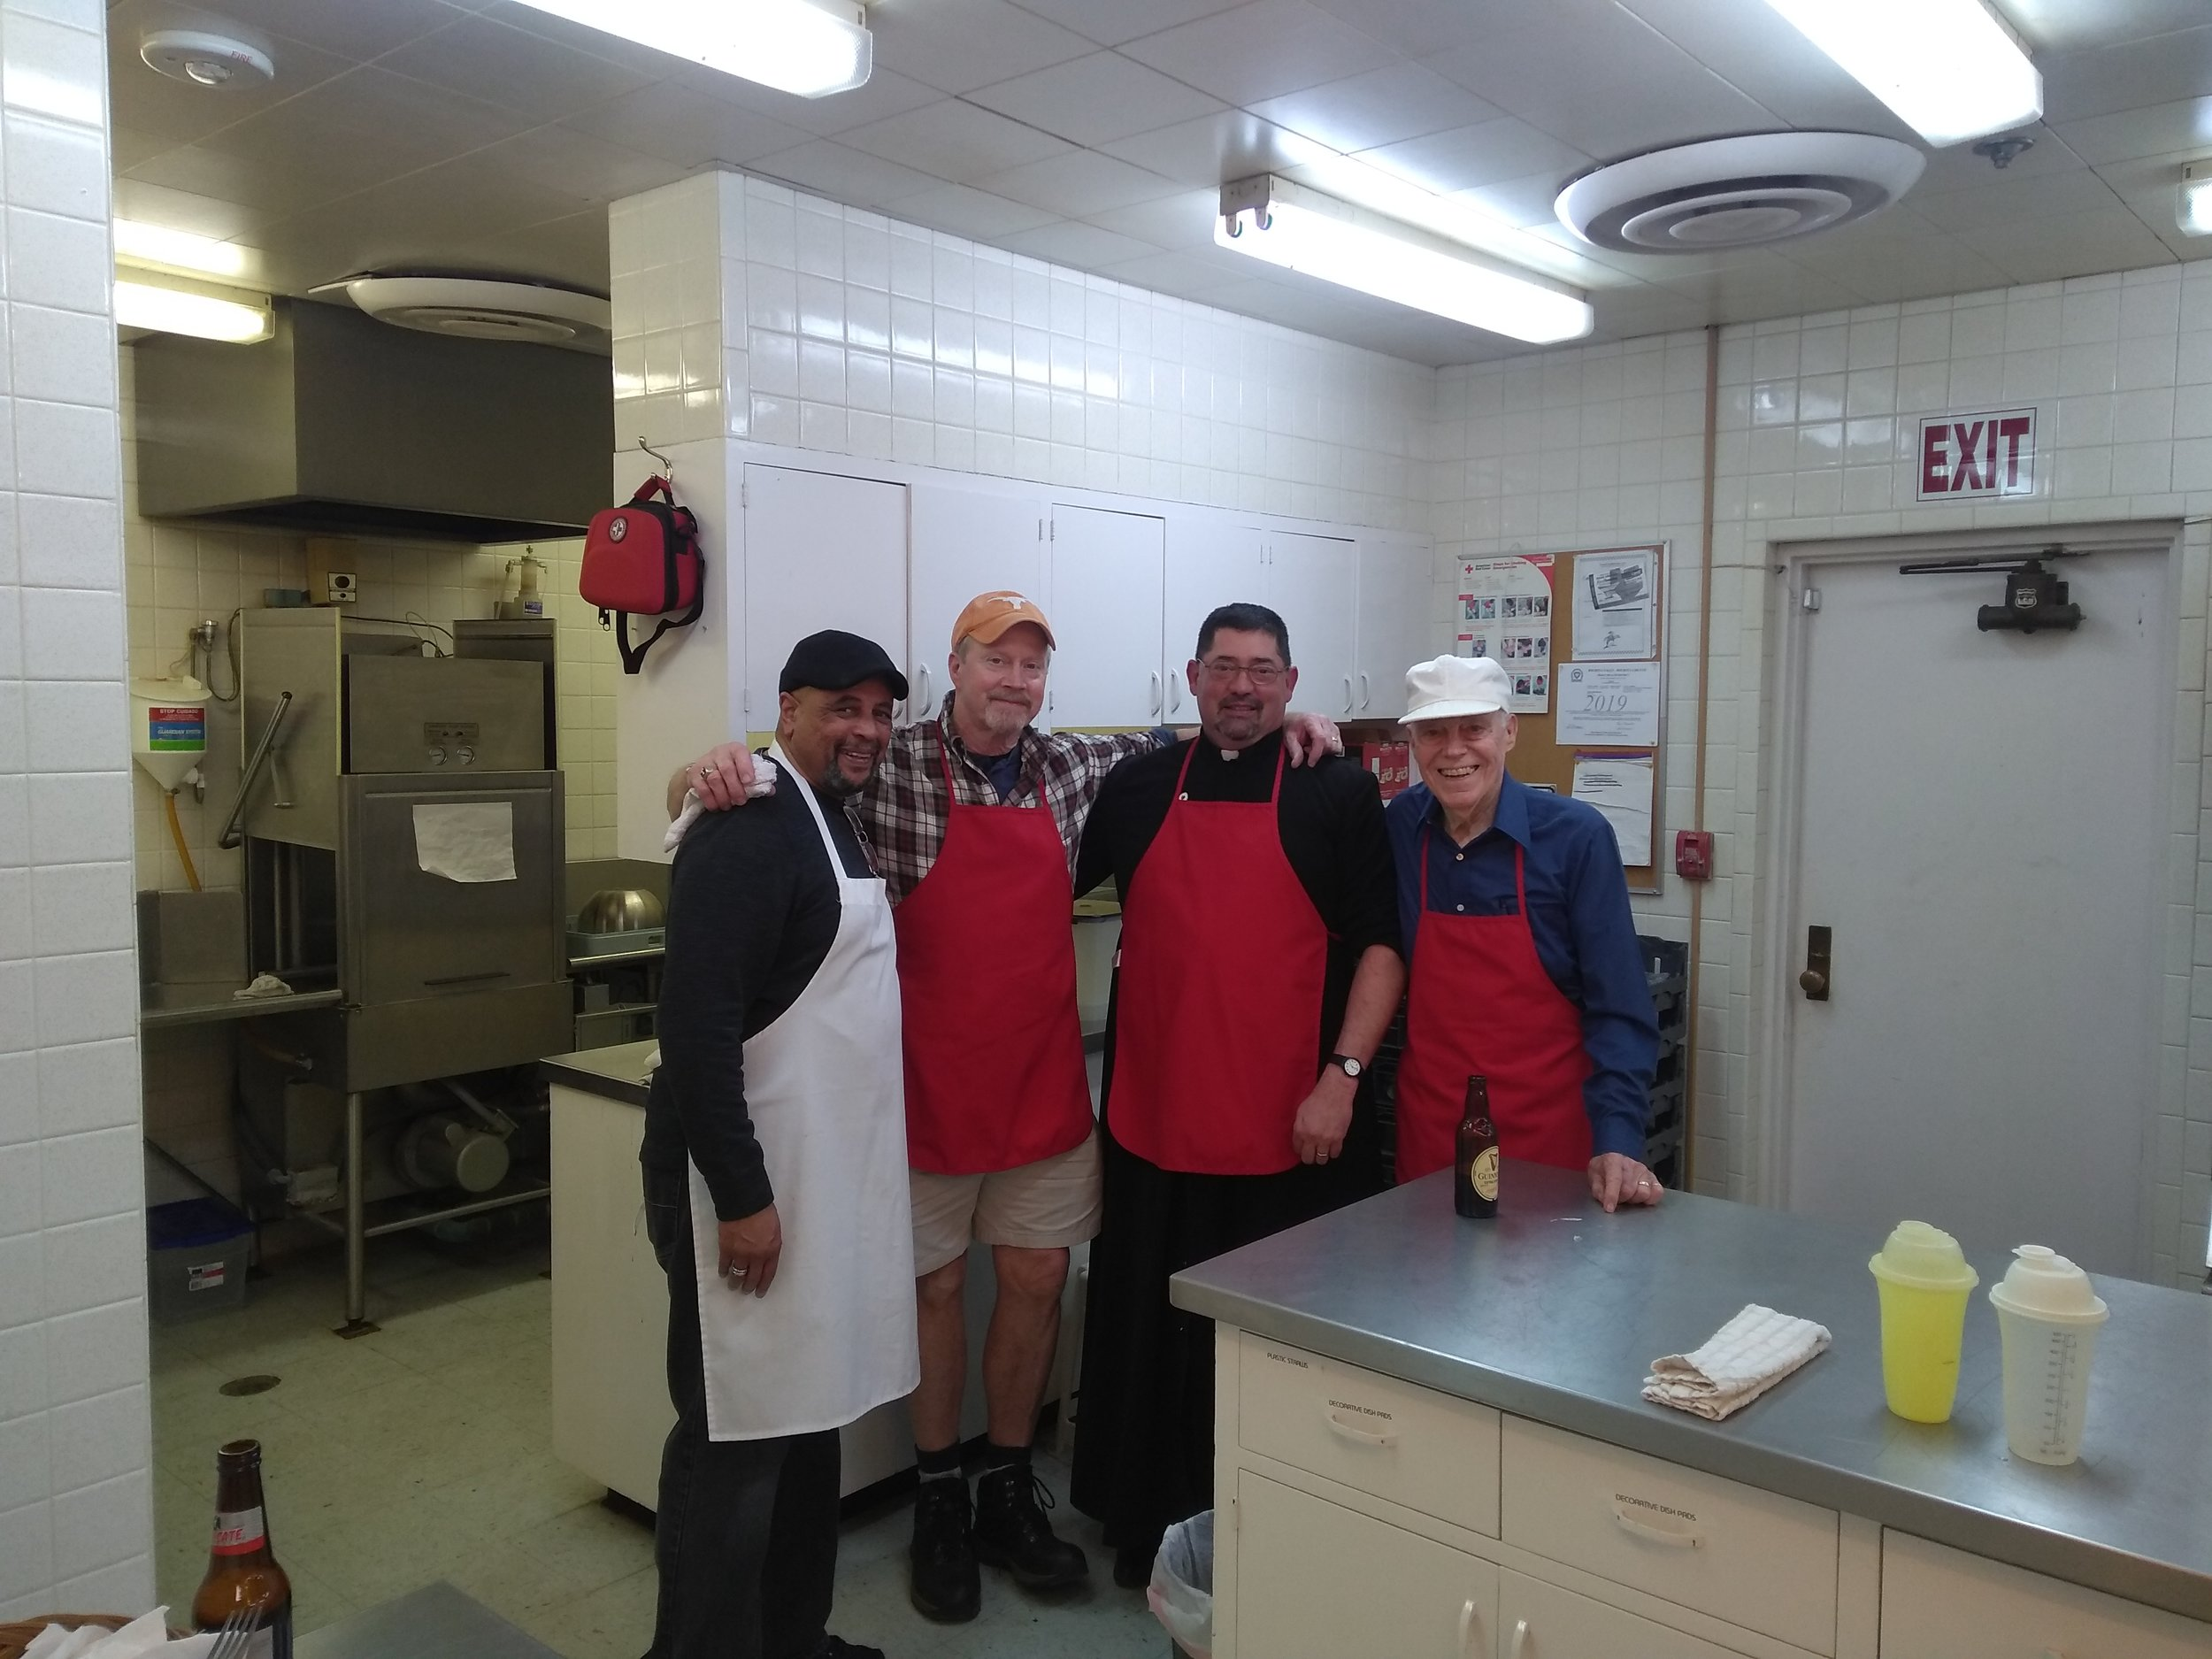 Thanks to the MOGS (Men of Good Shepherd) for cooking up the pancakes and sausage, serving, and clean-up.